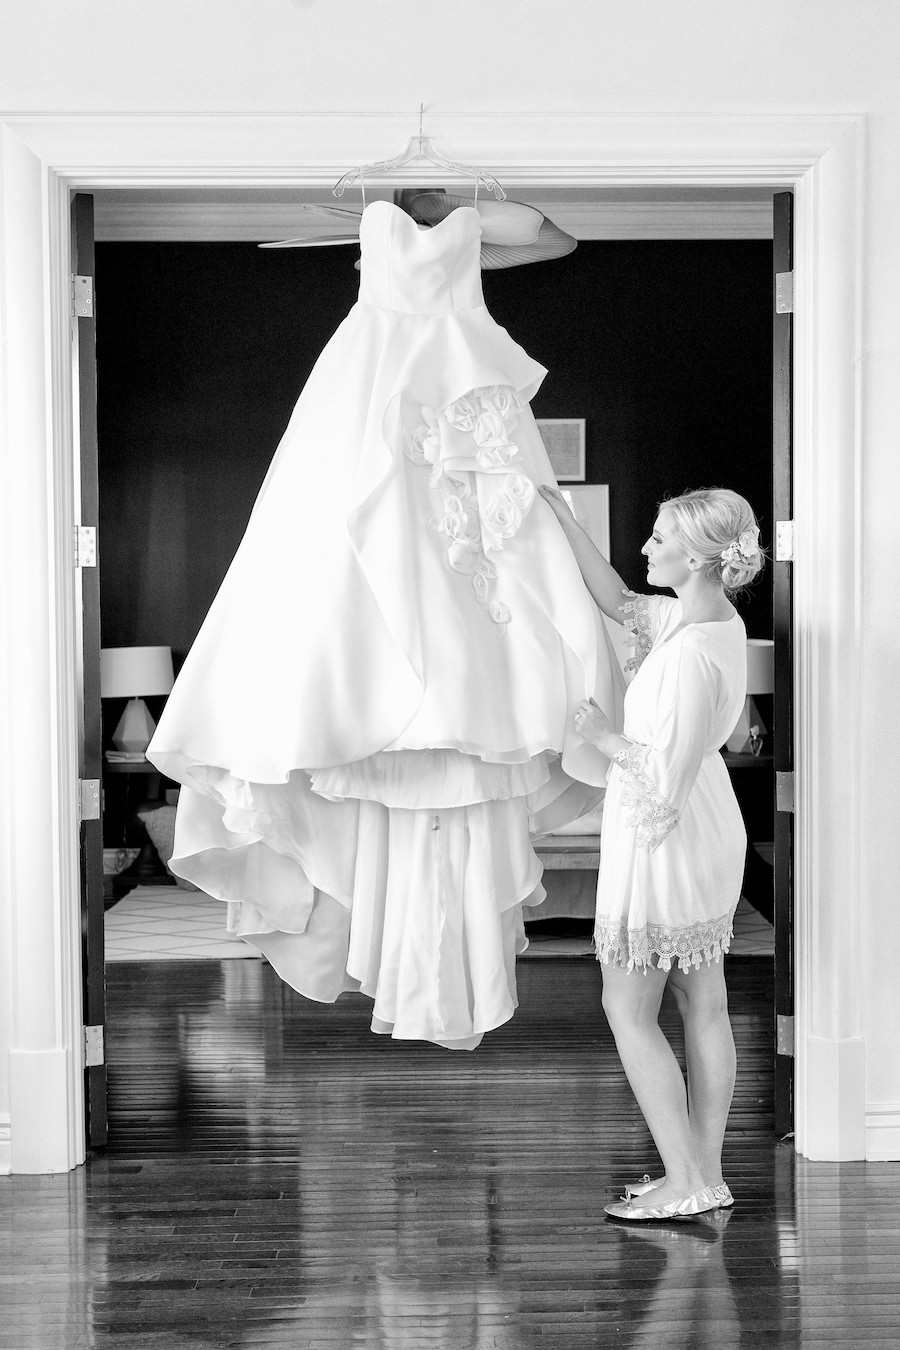 A bride fixing her dress the morning of her wedding